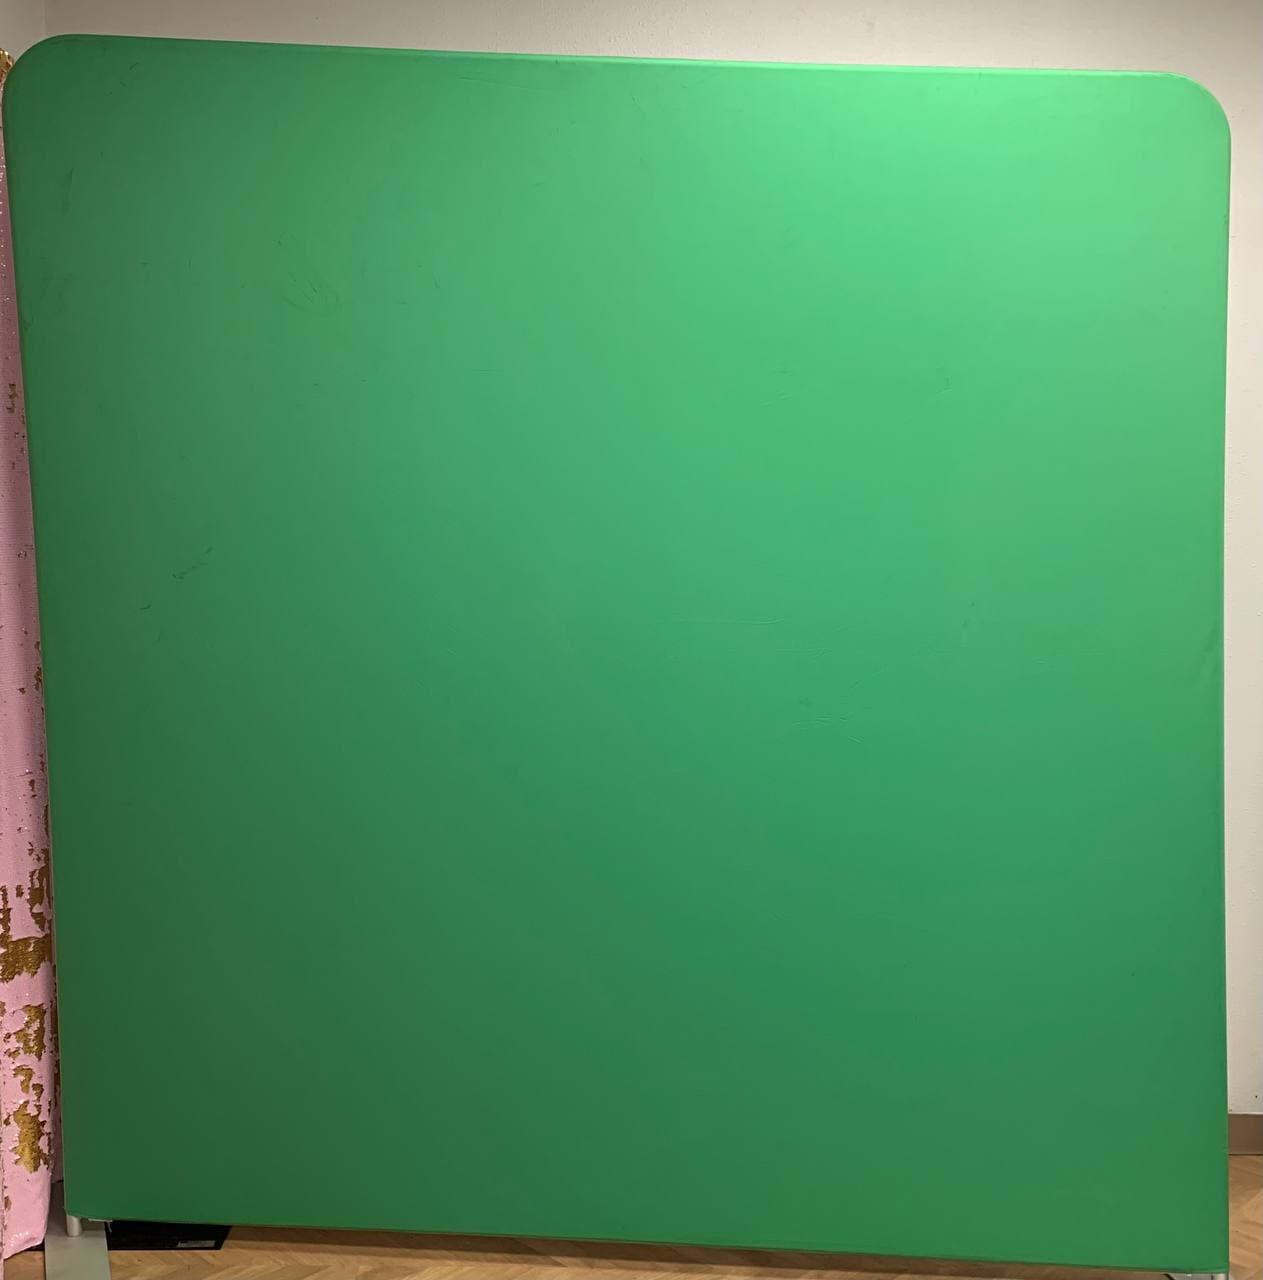 Double Sided Photo Backdrop | Tension Fabric Backdrop